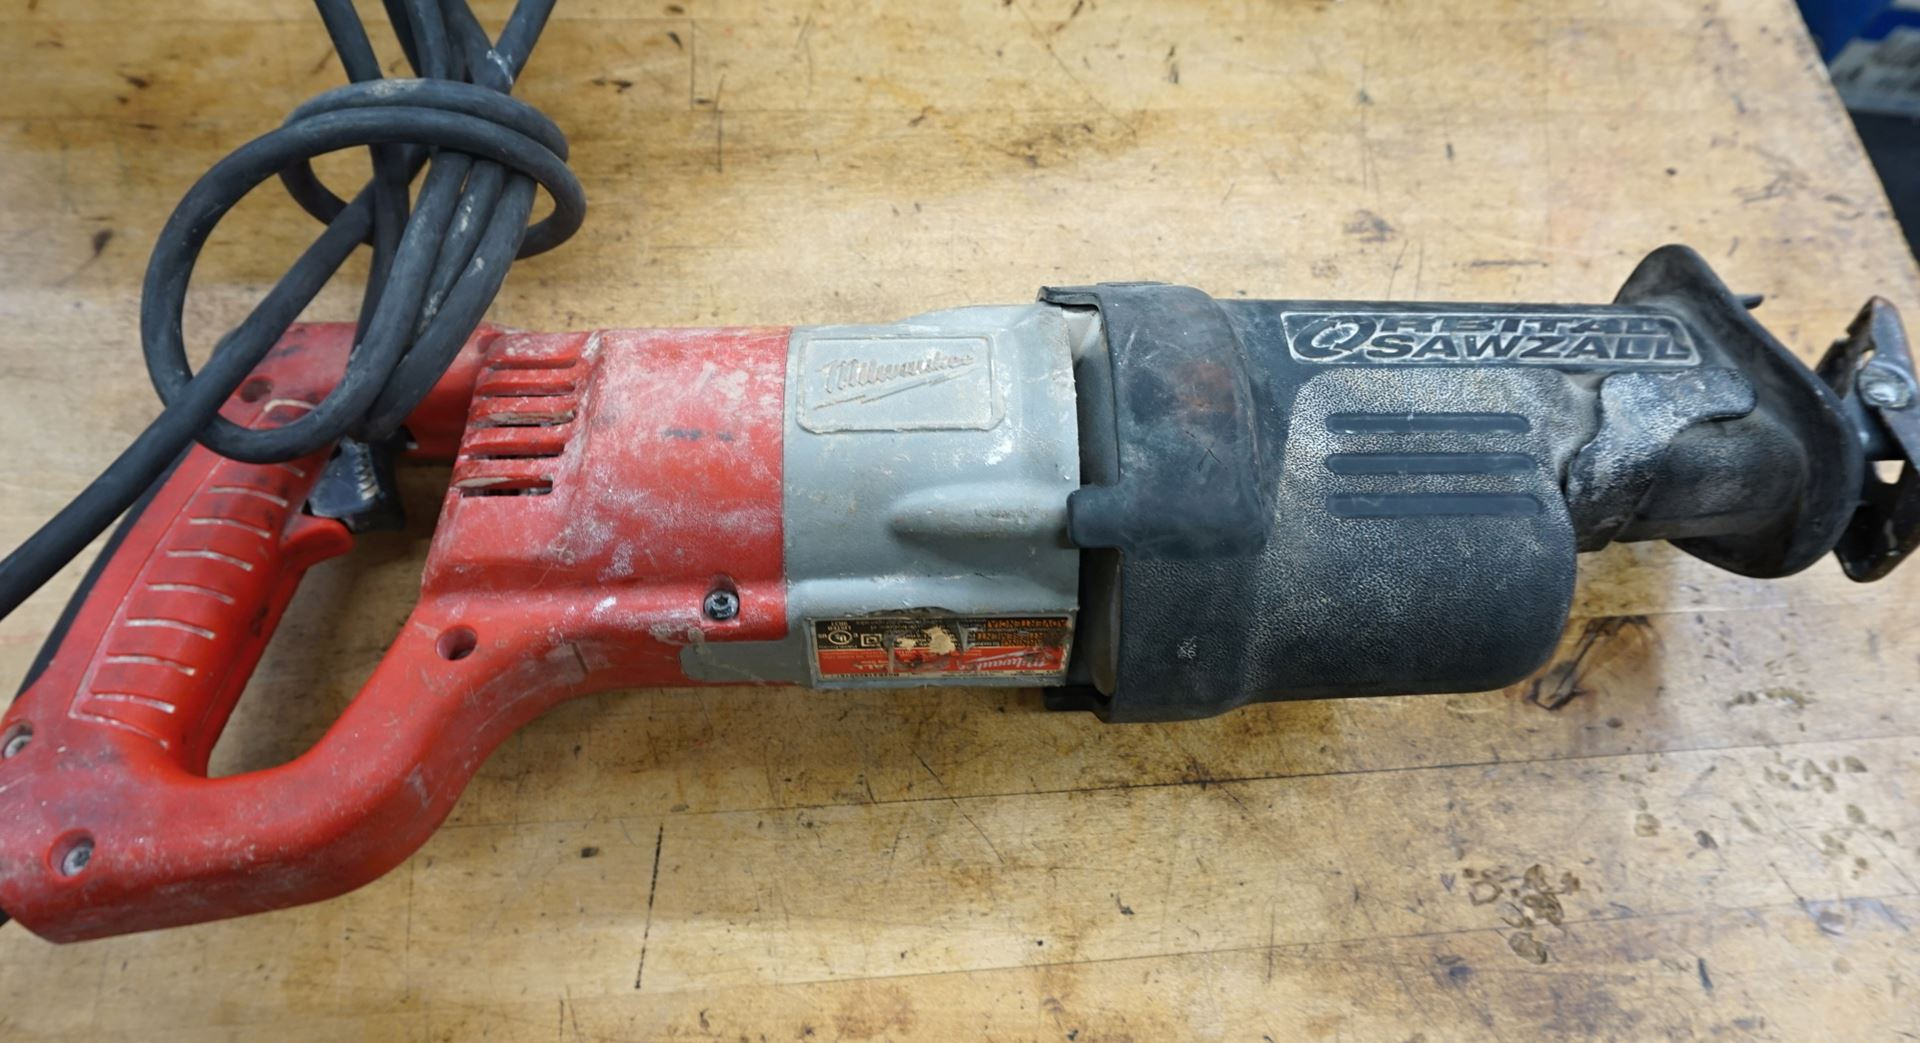 Milwaukee 6520 21 >> Milwaukee Sawzall 6520 21